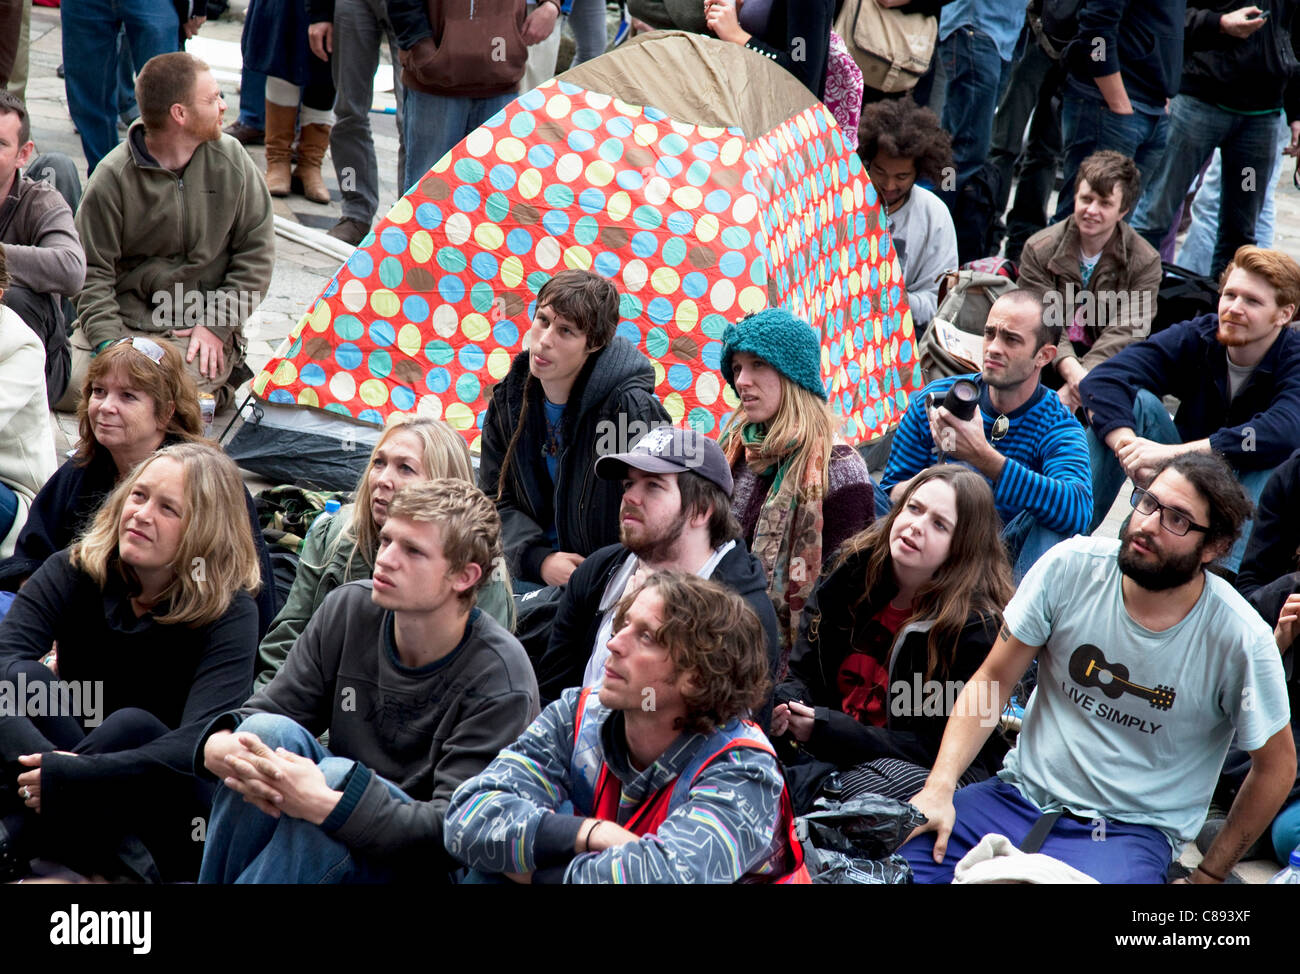 People gathered listening to speakers. Occupy London protest at St Pauls, October 16th 2011. Protest spreads from - Stock Image